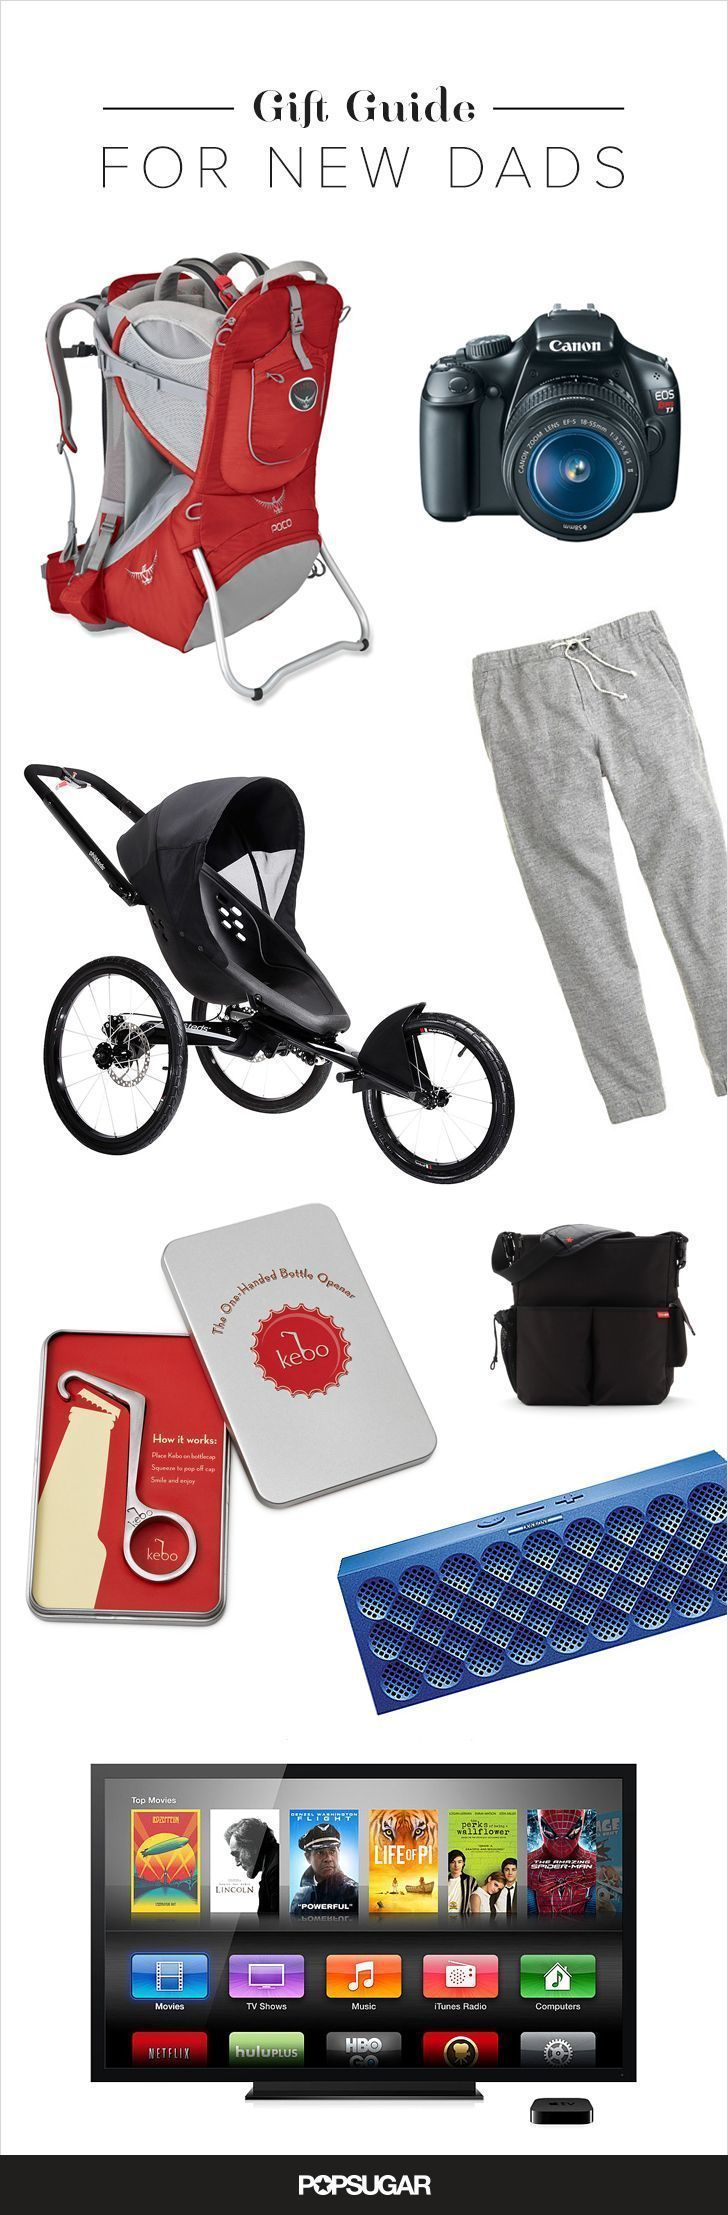 The Best Gifts For New Dads Gifts for new dads, Baby